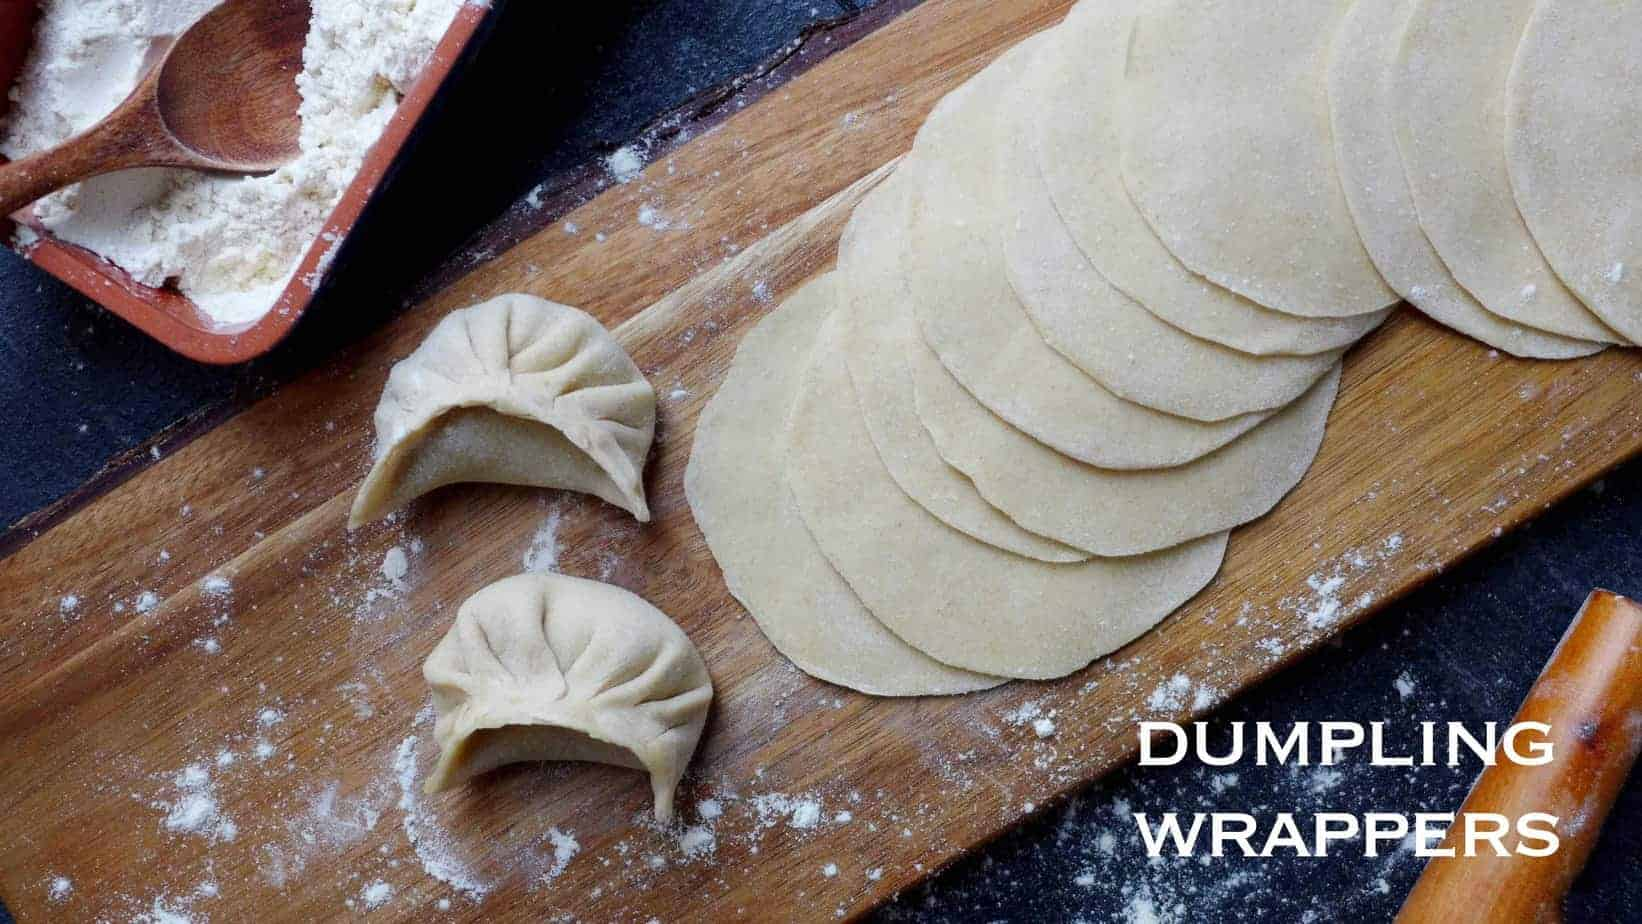 Homemade Dumpling Wrappers Ultimate Dumpling Guide Part 1 Red House Spice